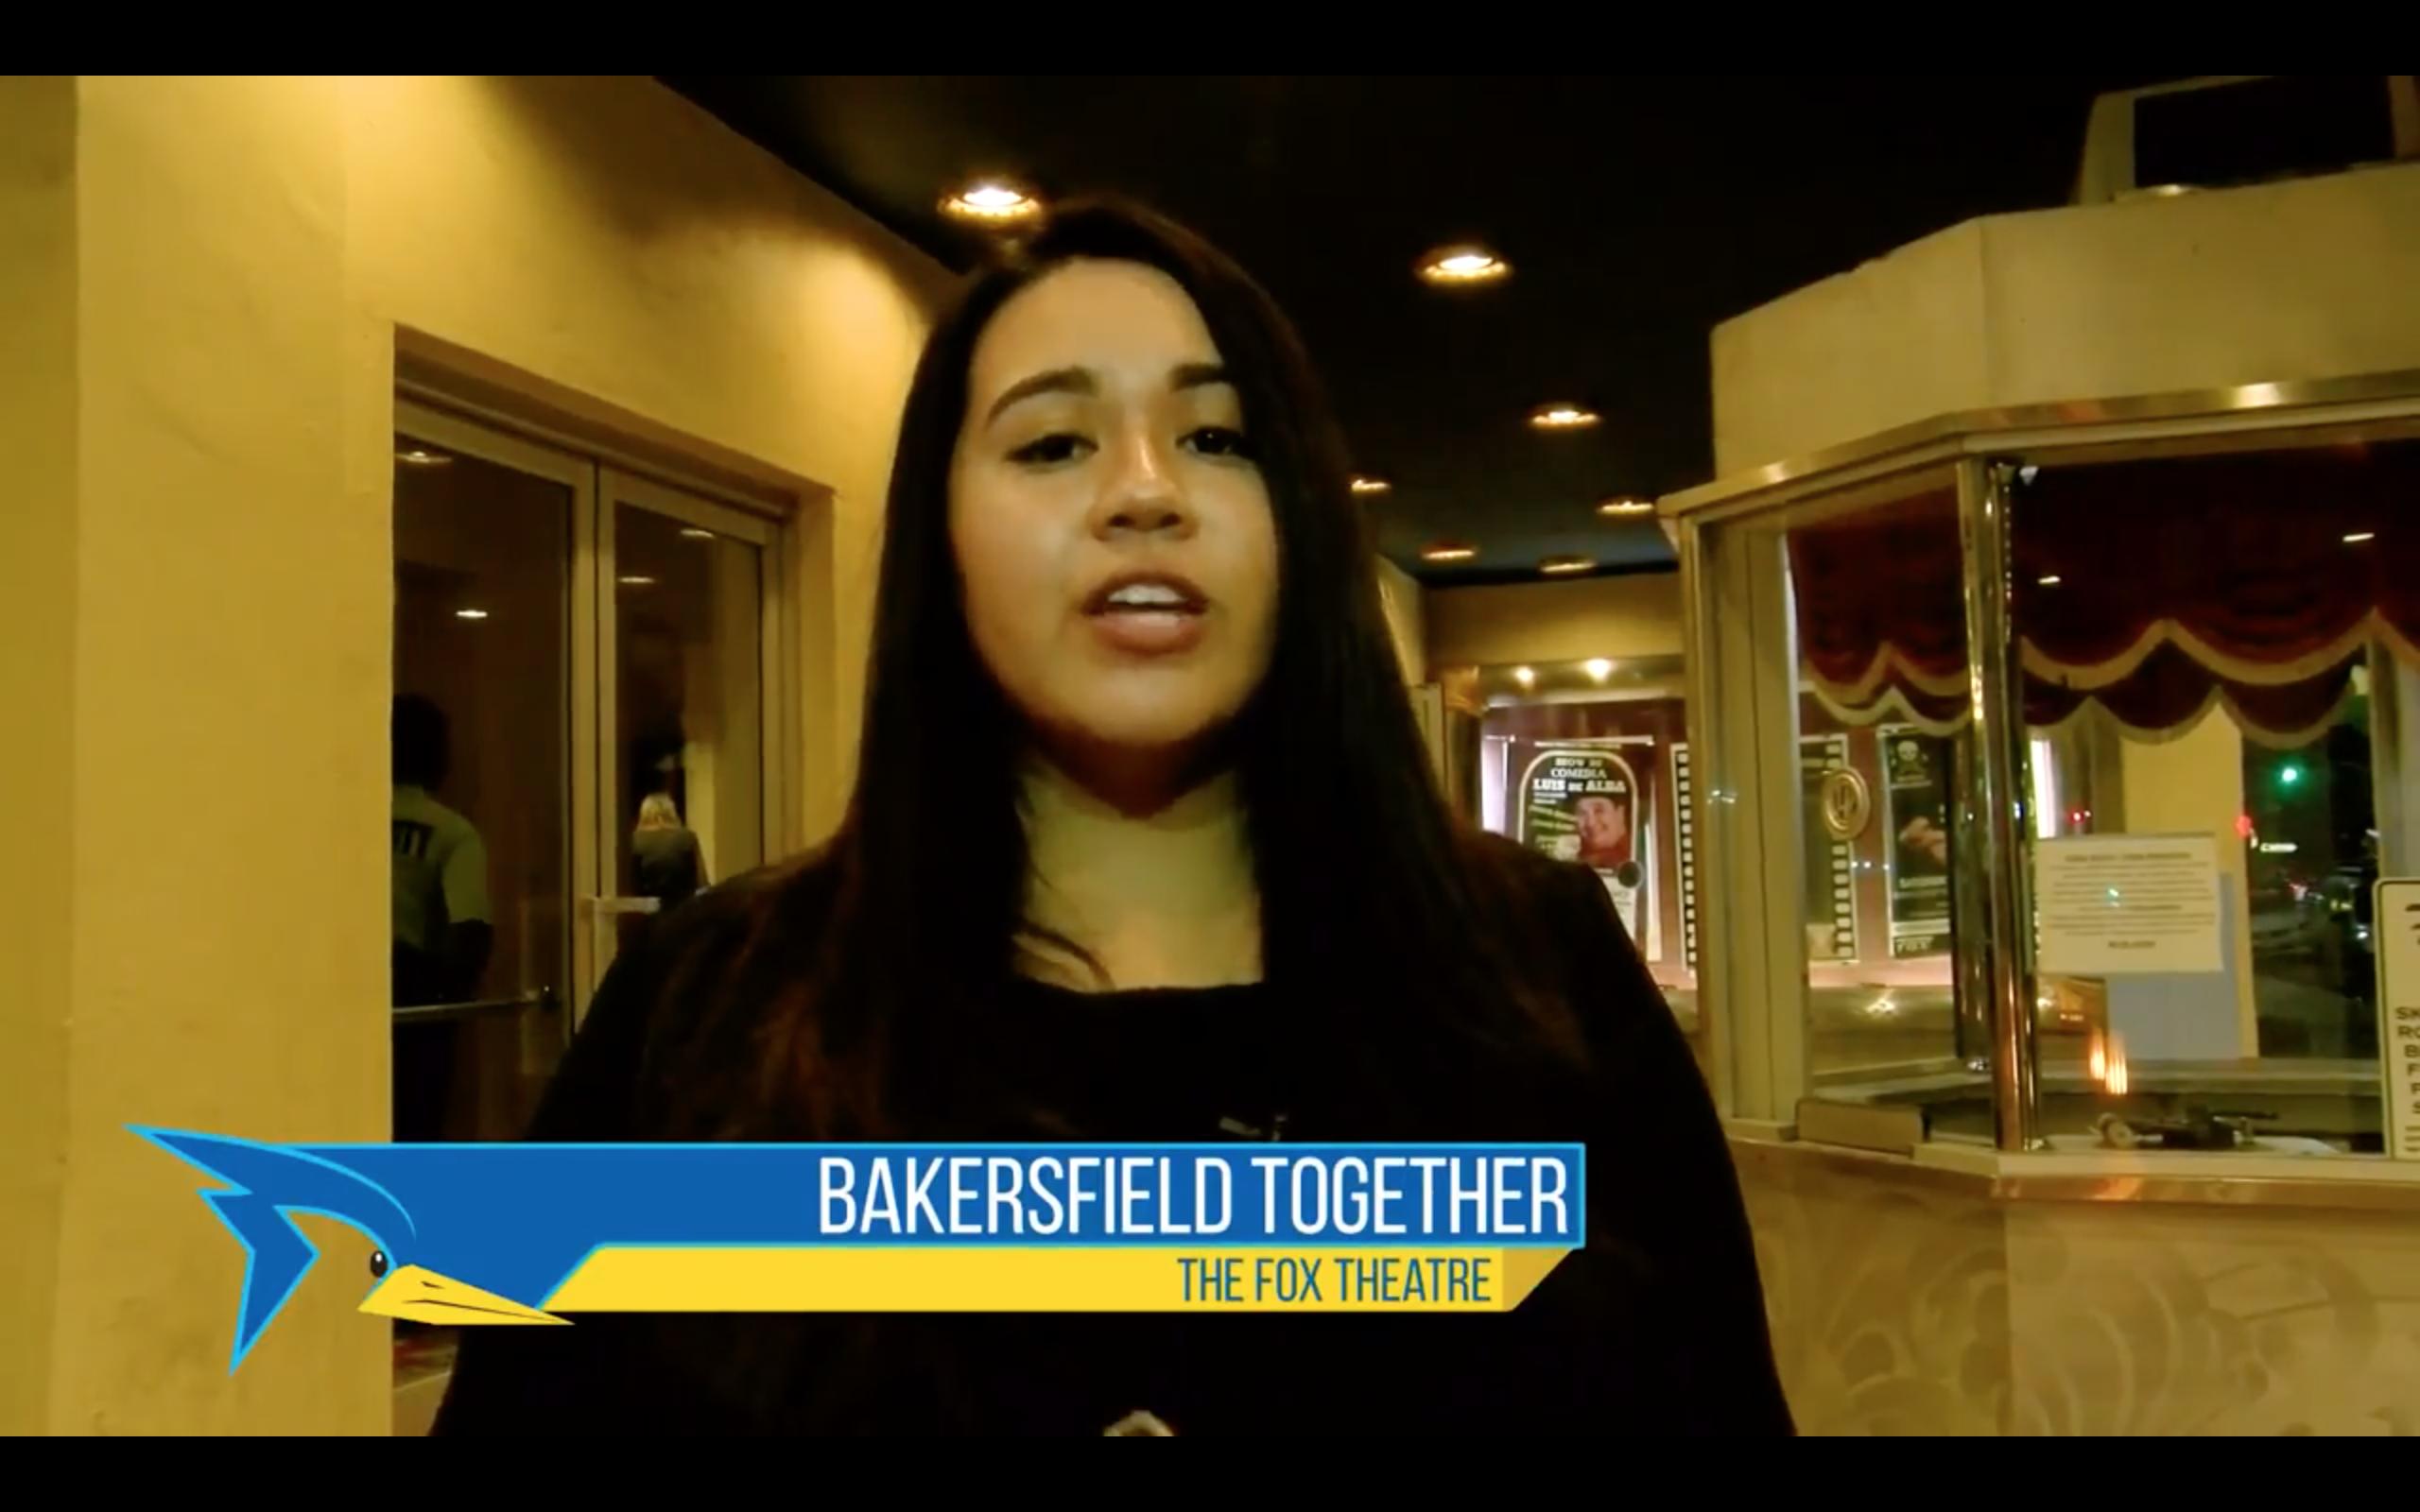 Bakersfield Together Las Vegas